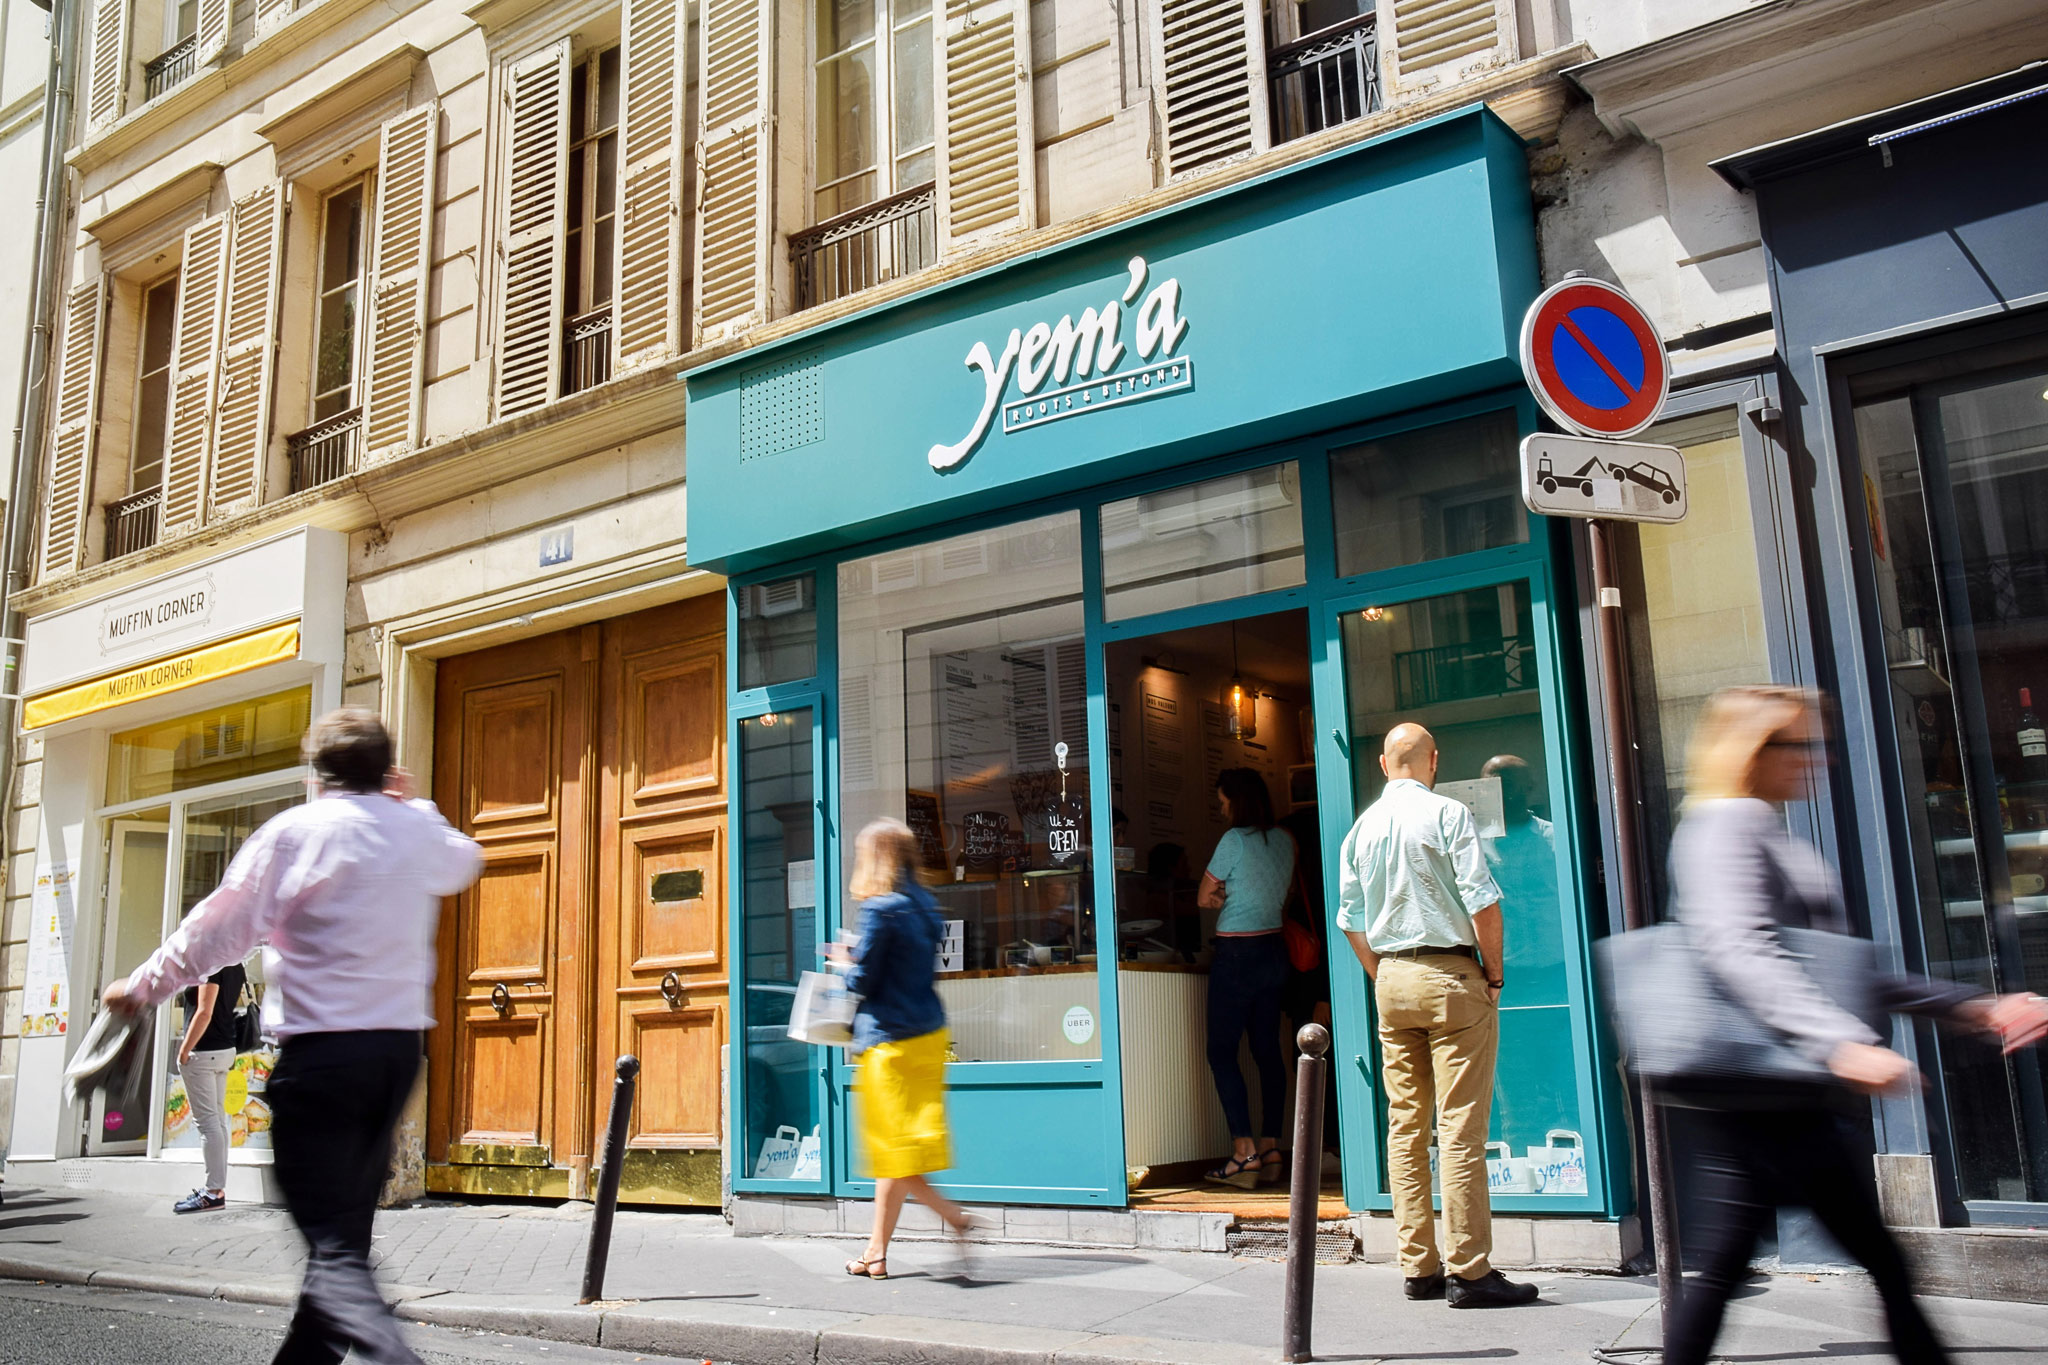 HiP Paris' guide to gluten-free restaurants and bakeries in Paris, includes Yem'a in Madeleine with a turquoise shop front.